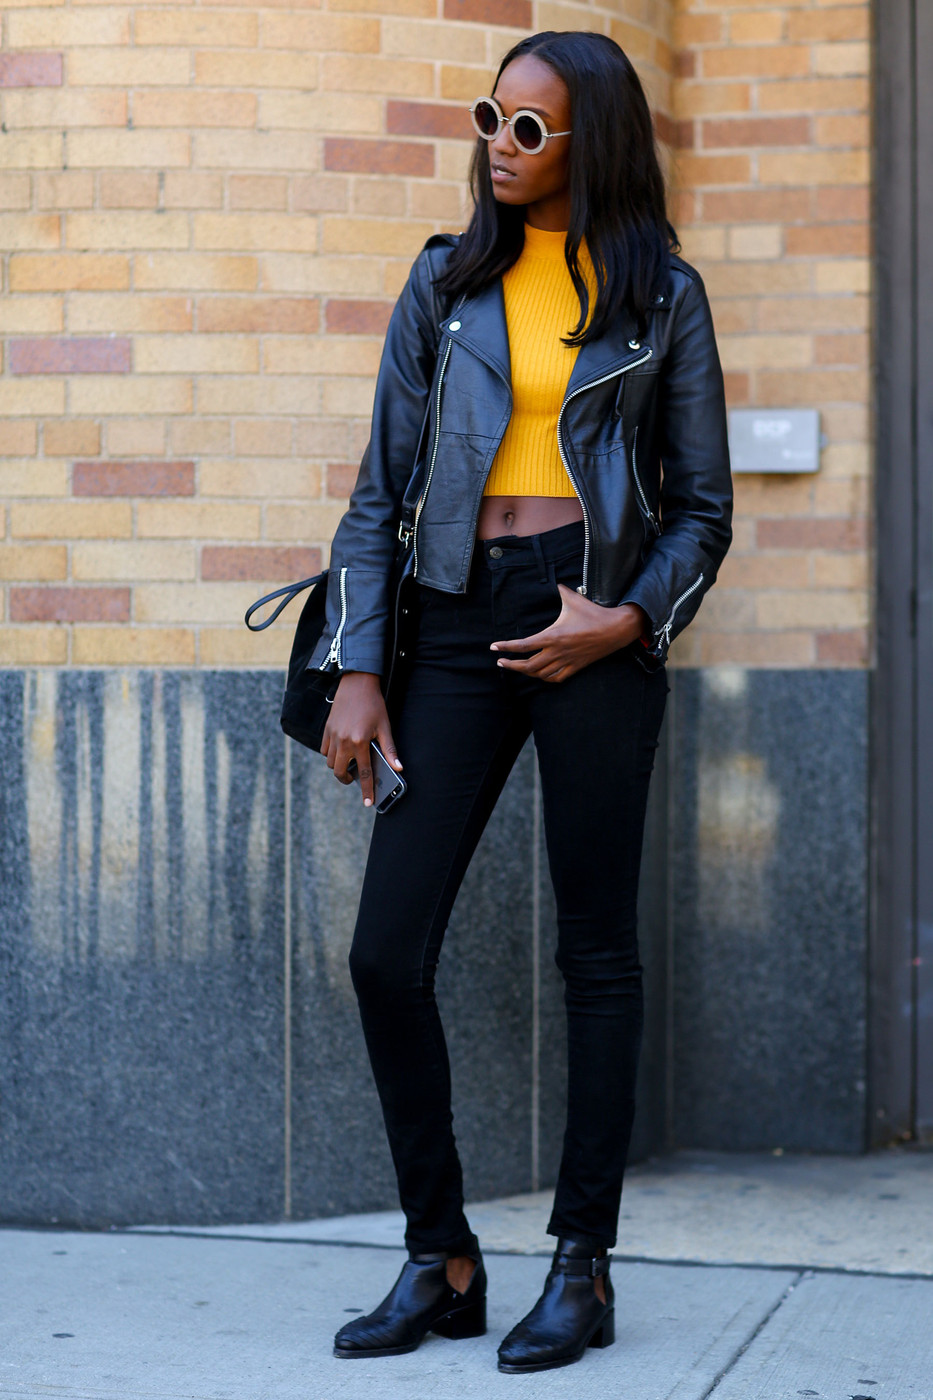 Street Style Leila Nda 39 S 39 90s Inspired Look The Front Row View